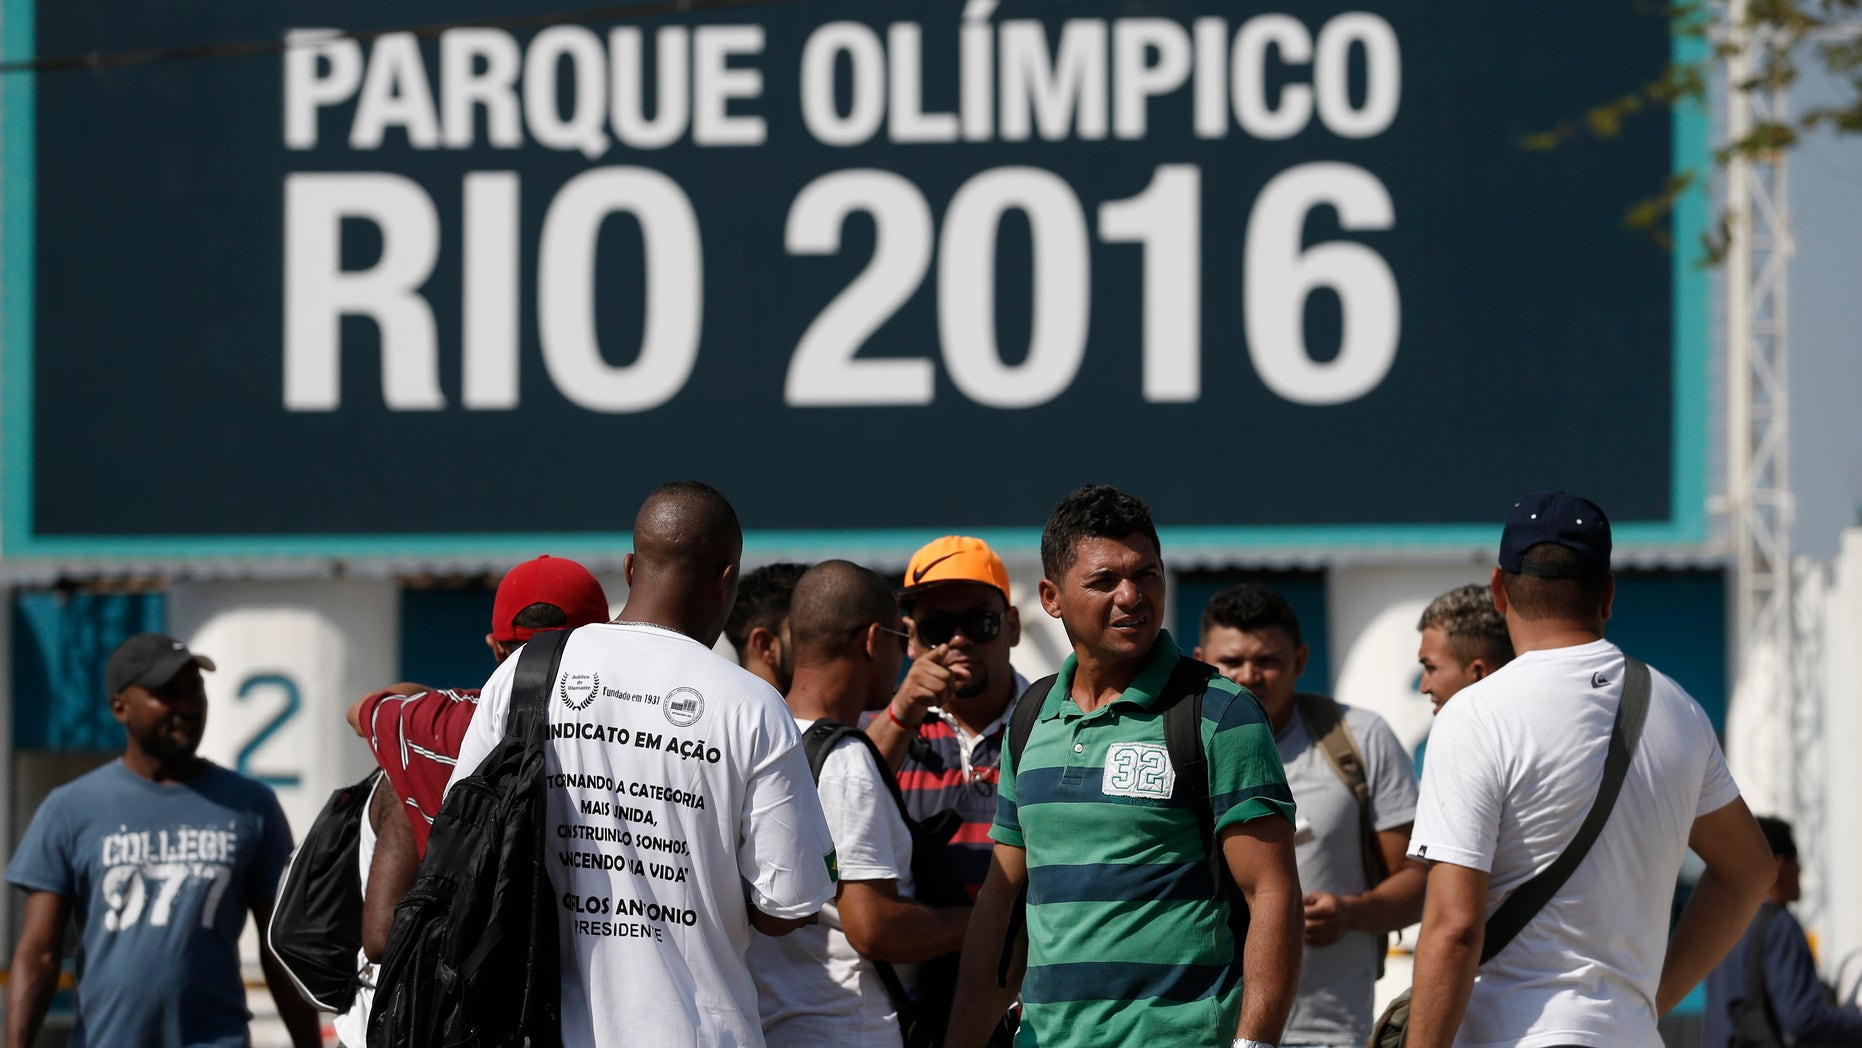 April 8, 2014: Striking workers stand in front the entrance of the Olympic Park, the main cluster of venues under construction for the 2016 Summer Olympic Games, in Rio de Janeiro, Brazil.